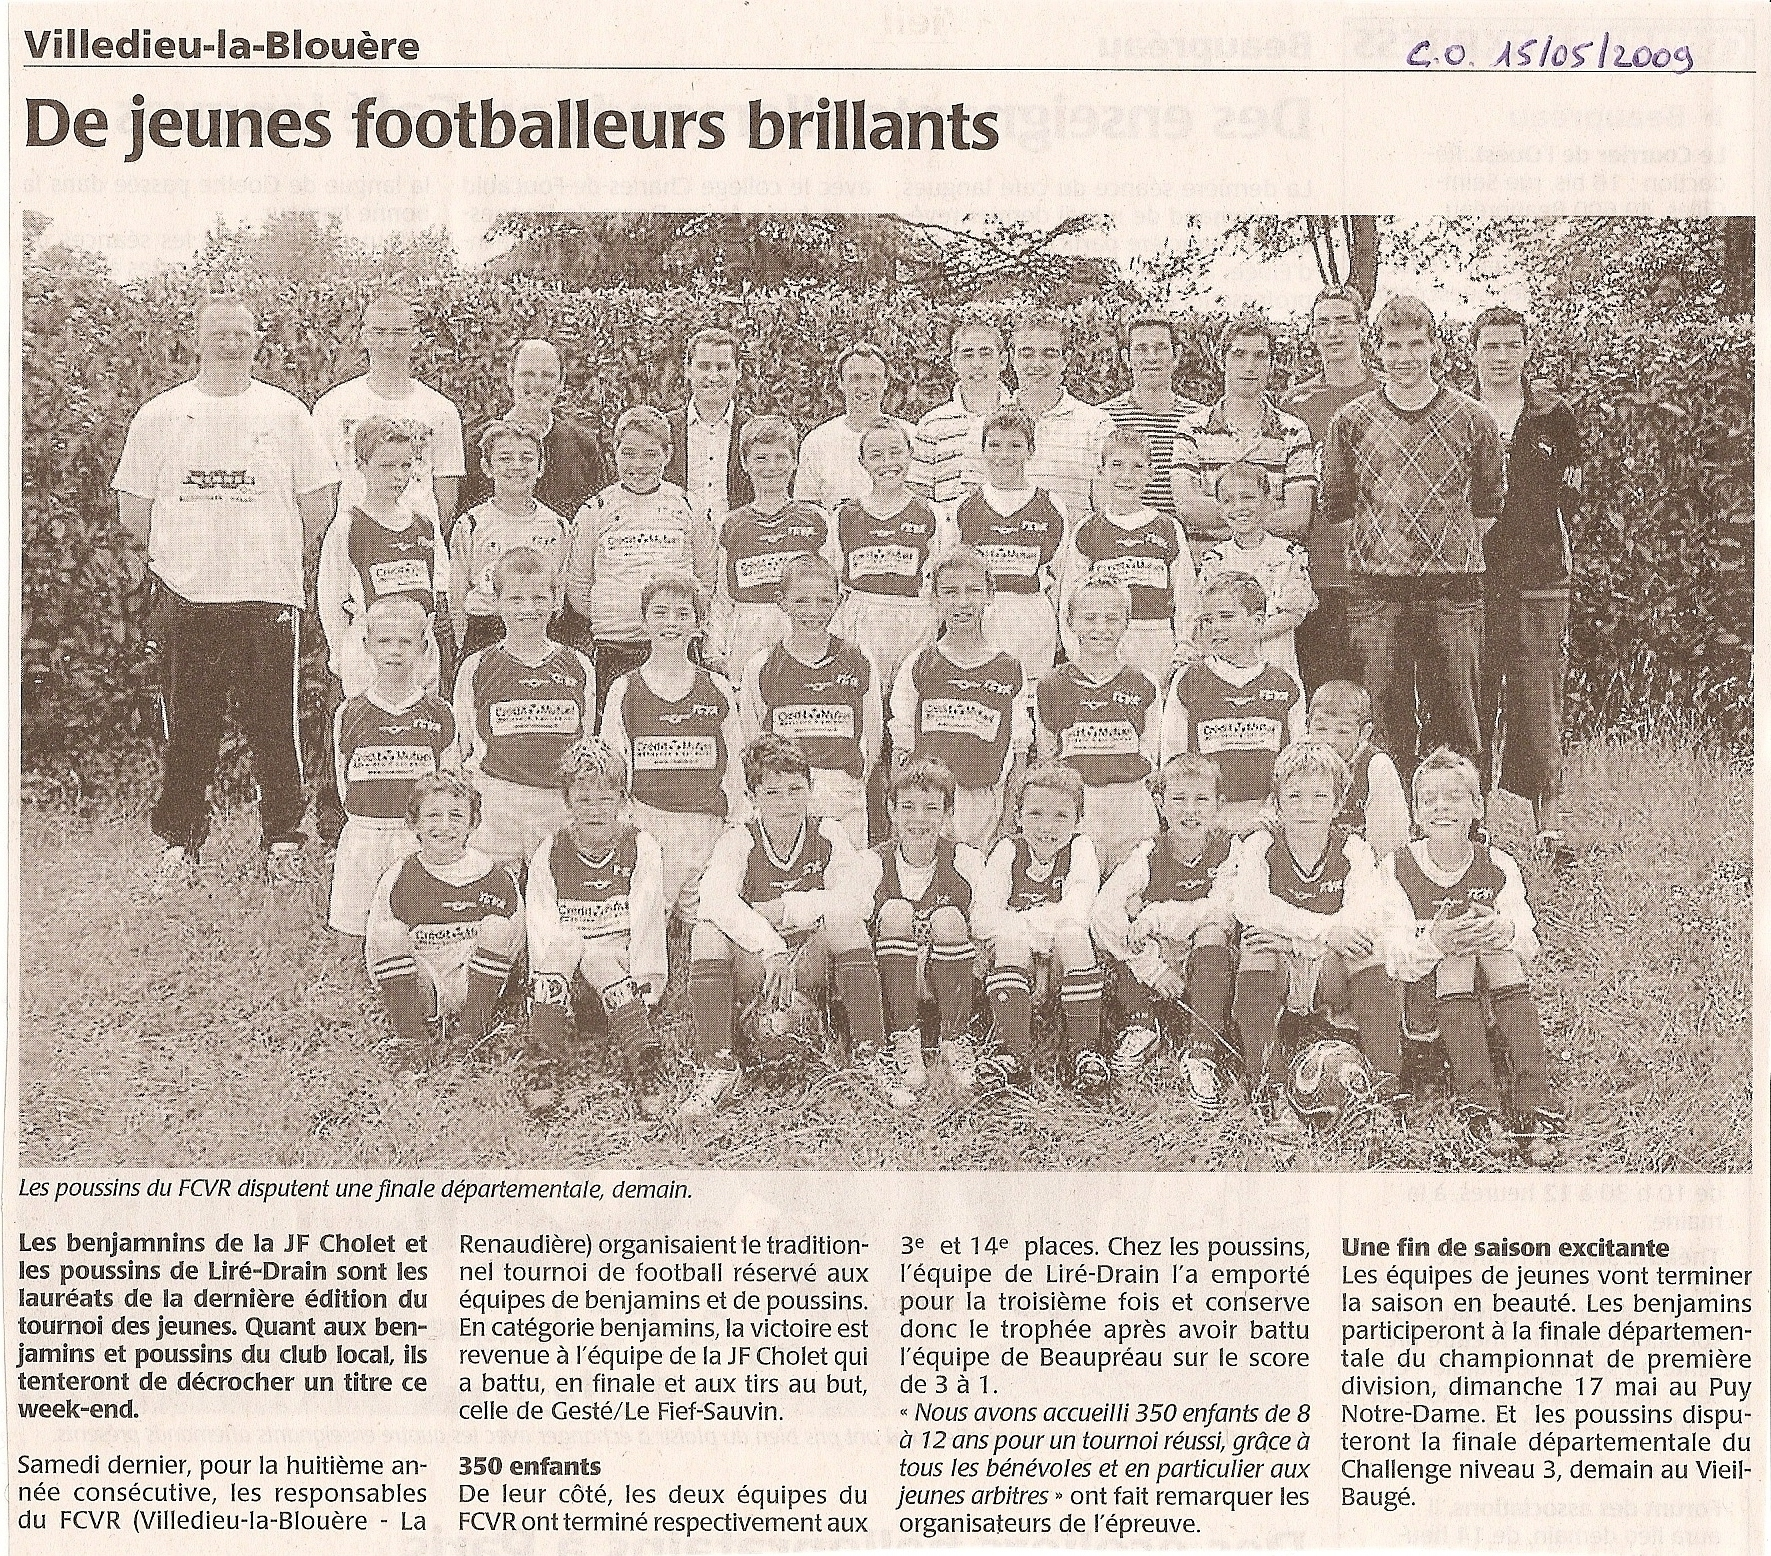 tournoi-pous-benj-2009-co-15-05-09